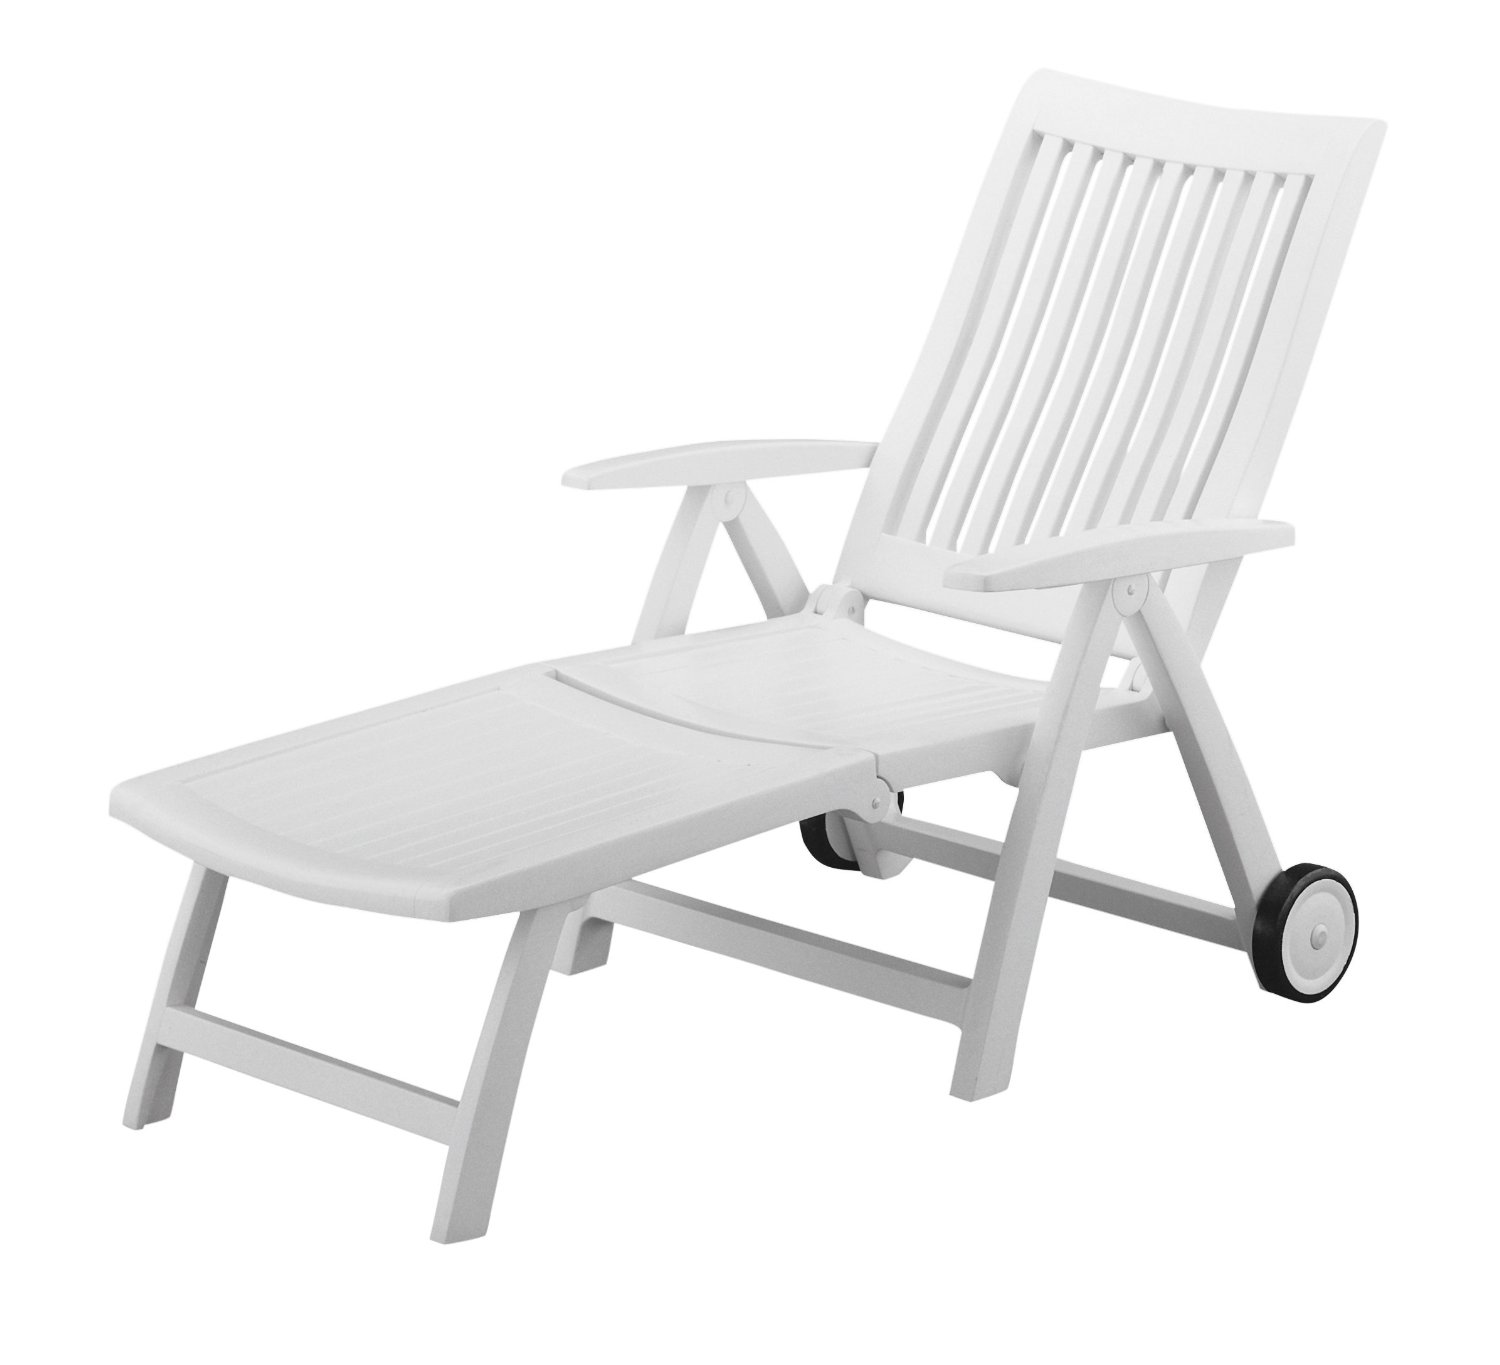 Kettler Lounge Kettler 1638 000 Roma Folding Chaise Outdoor Patio Furniture